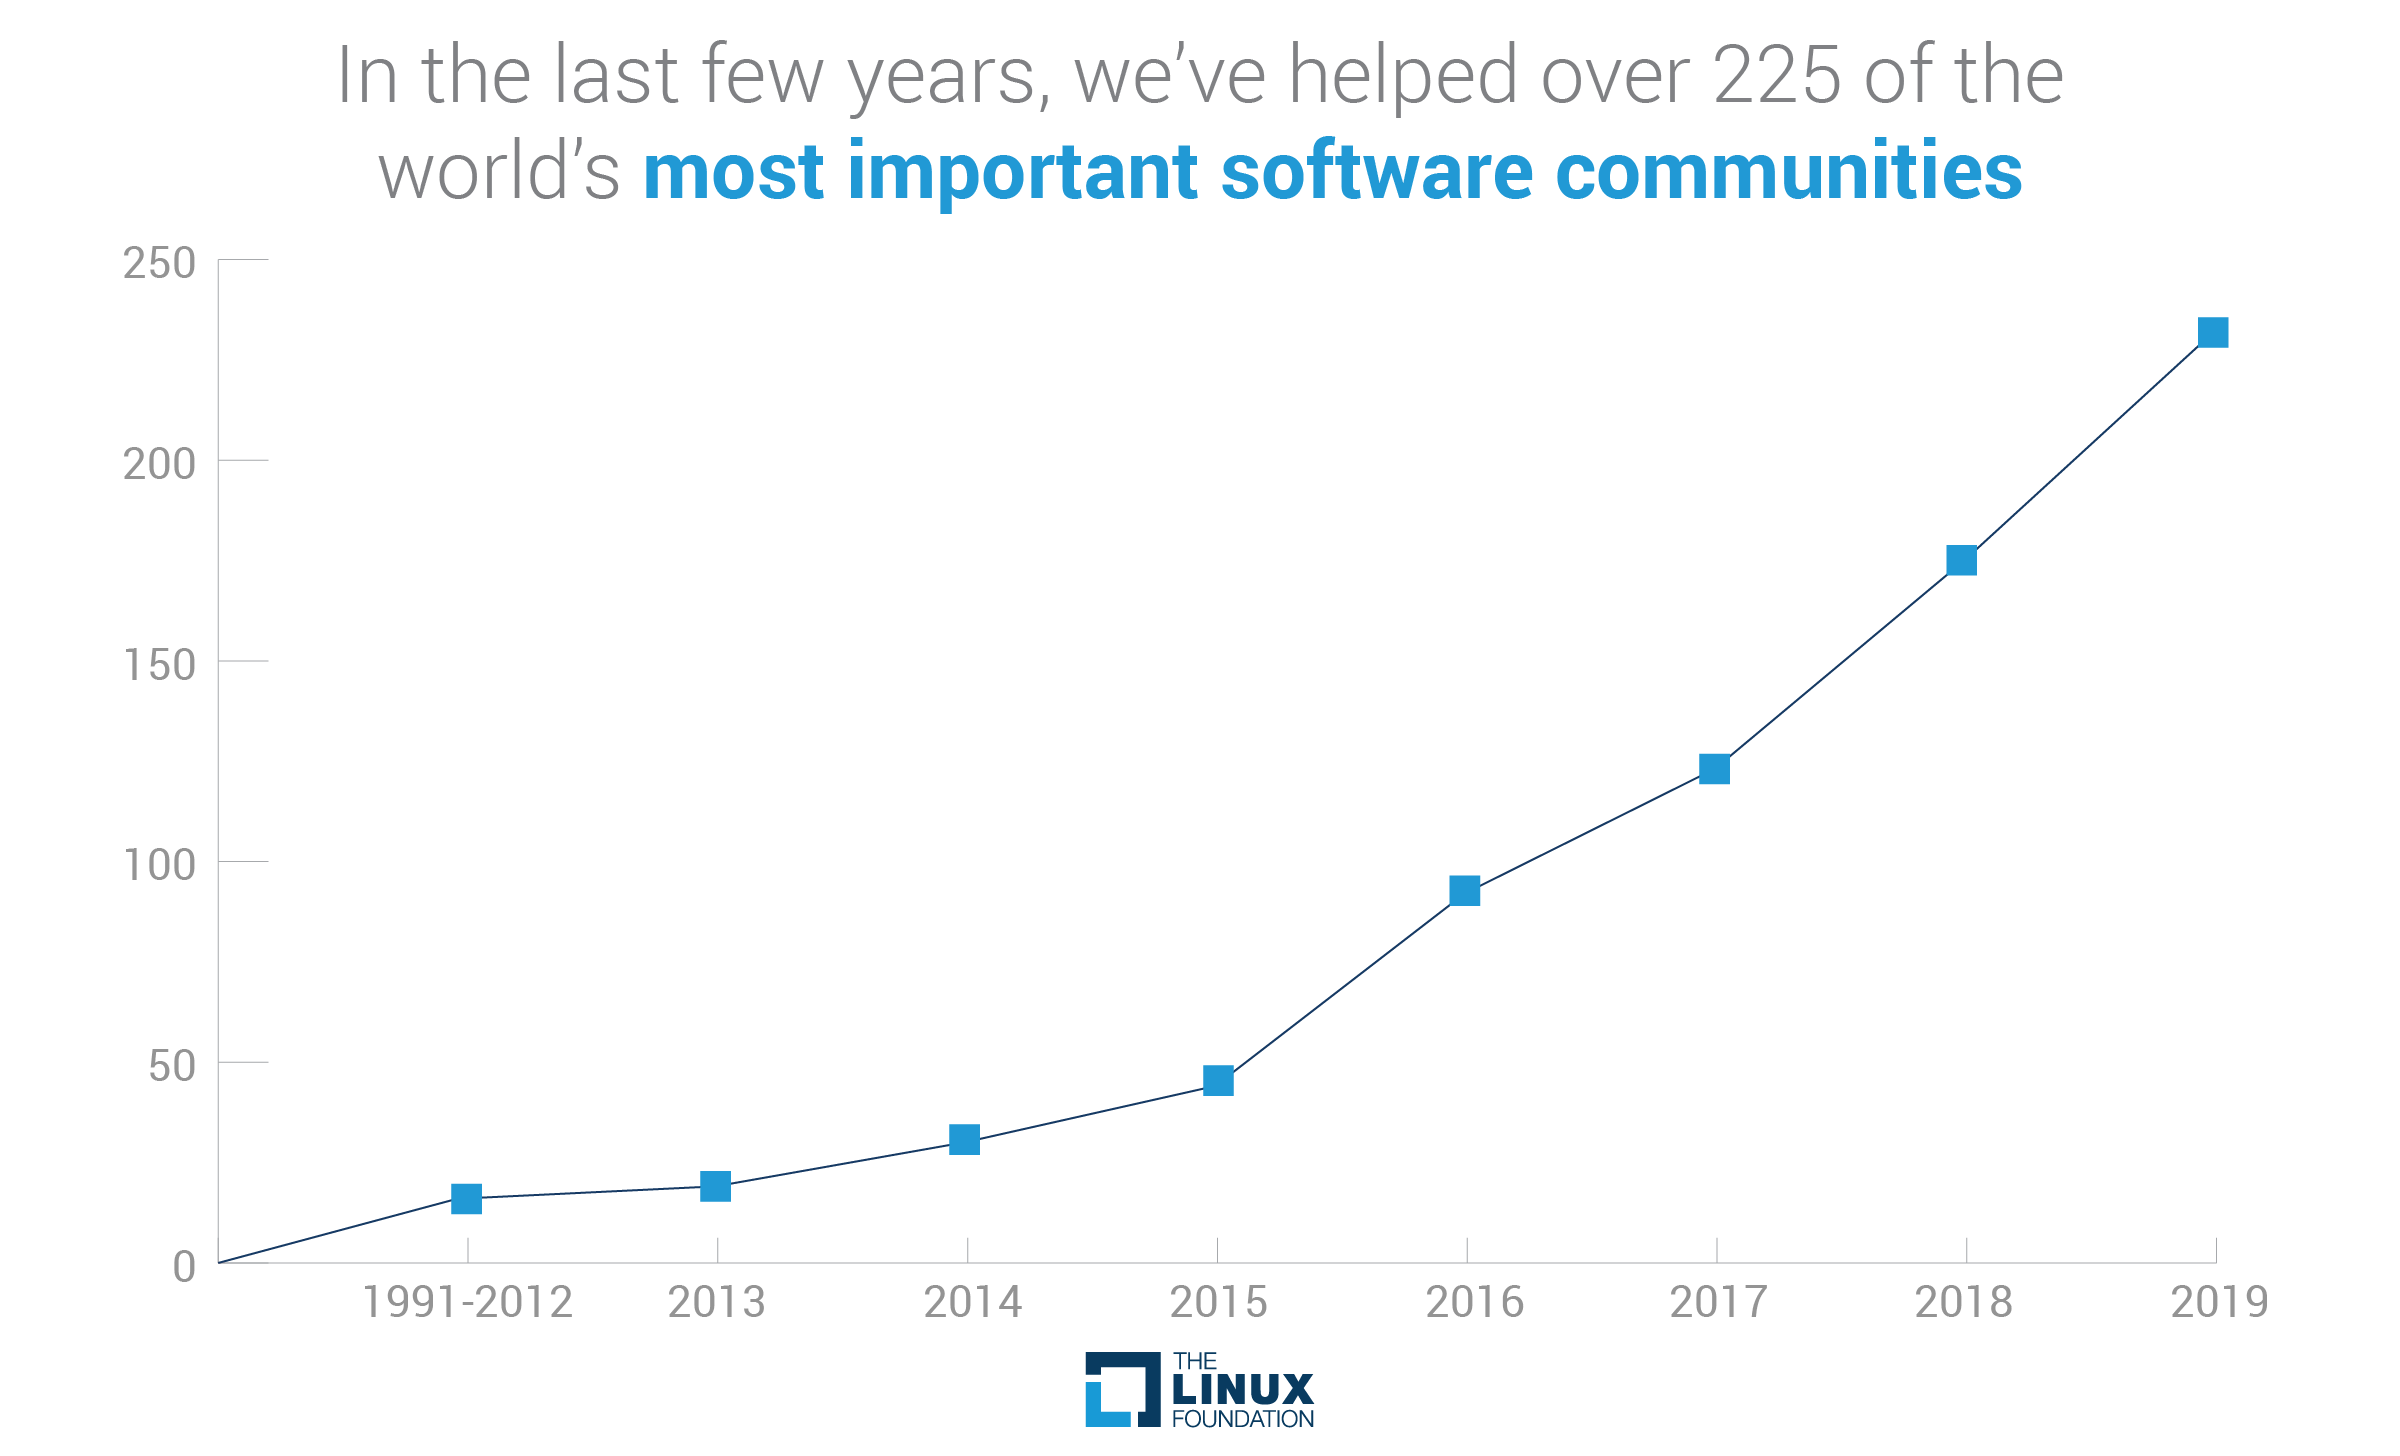 Project communities hosted by the Linux Foundation increased dramatically between 2013-2019